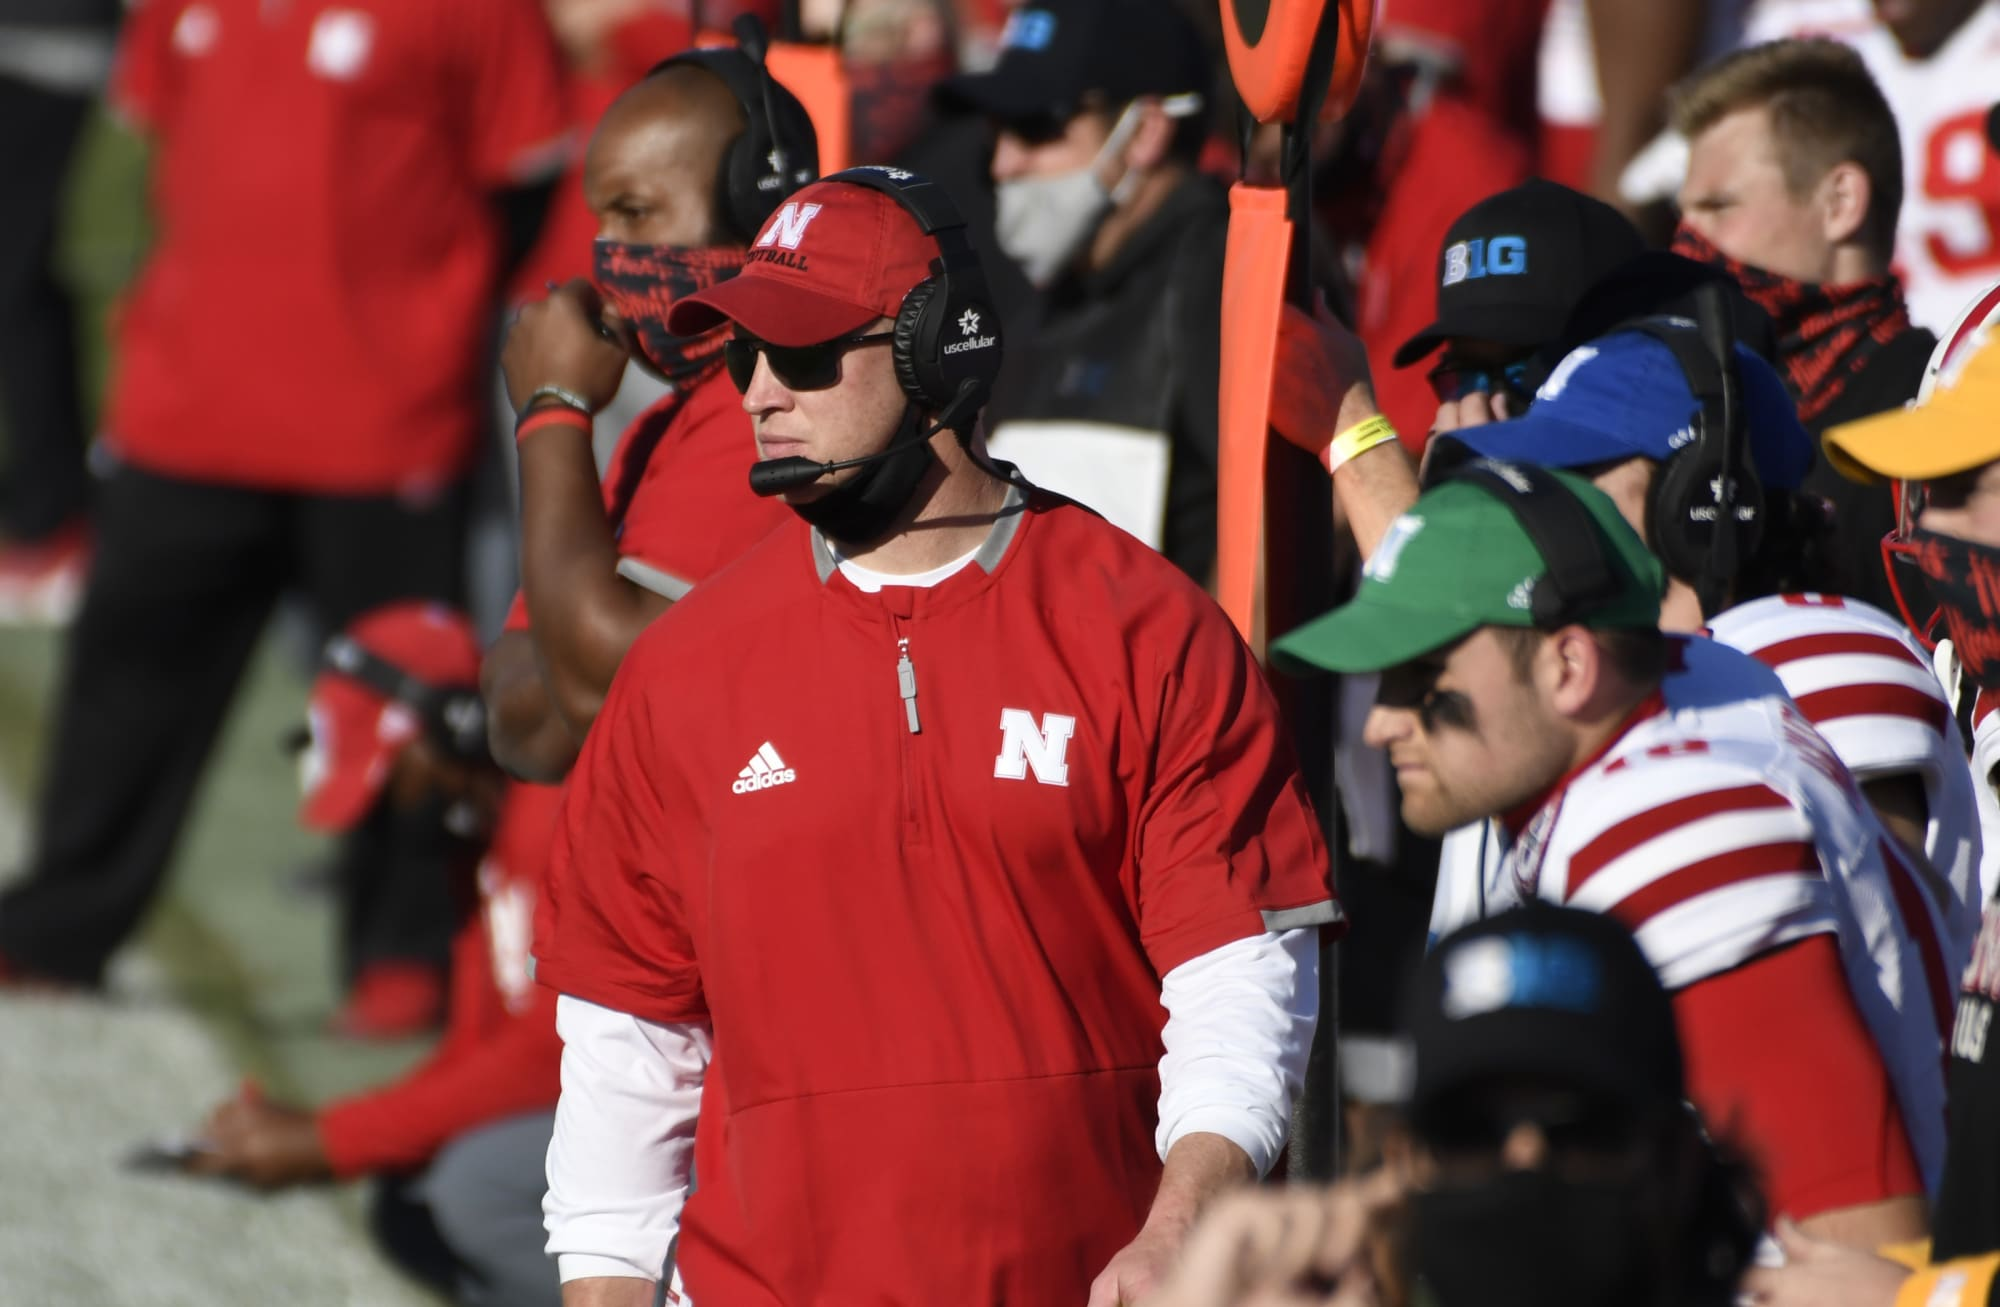 Nebraska football fans take to Twitter to try to get Scott Frost fired